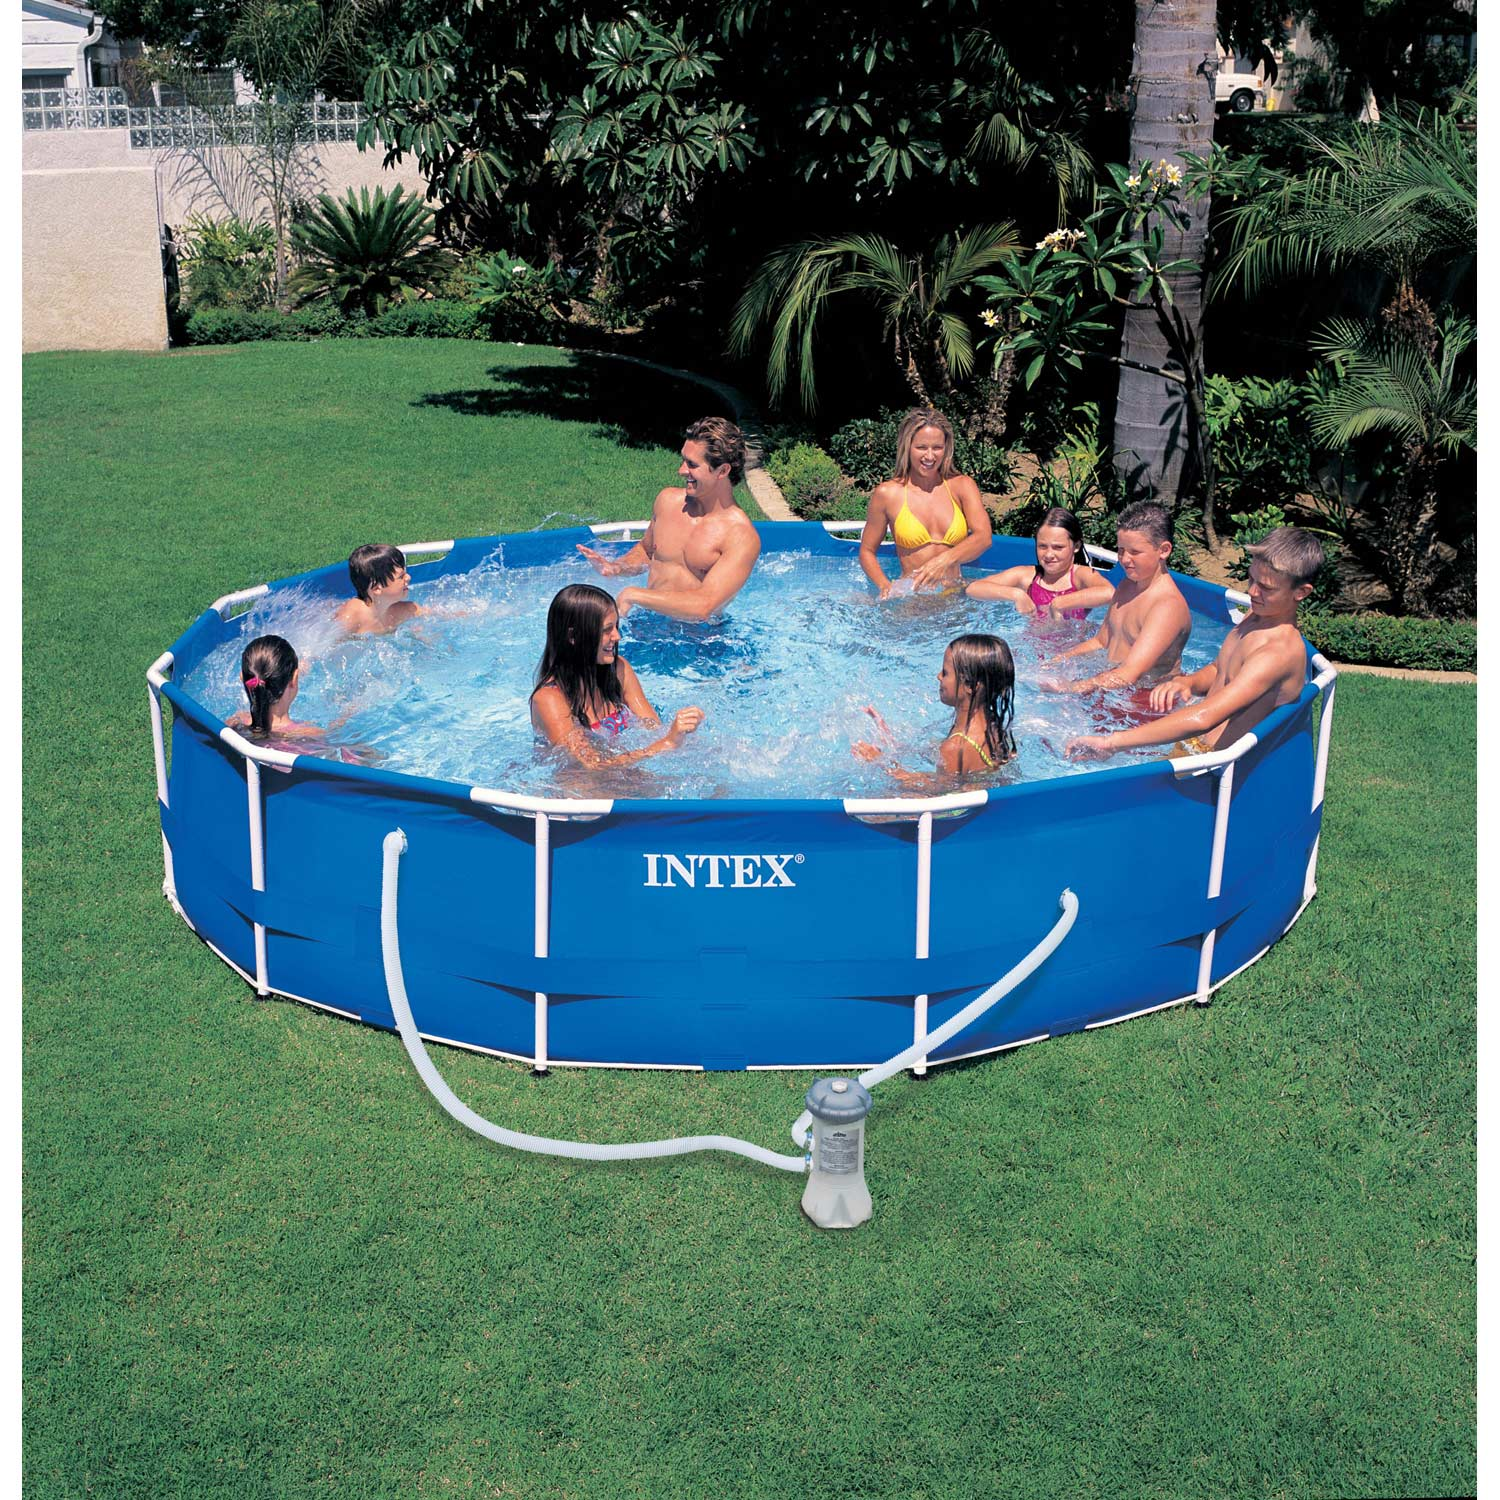 Piscine hors sol autoportante tubulaire metal frame intex for Piscine rectangulaire rigide